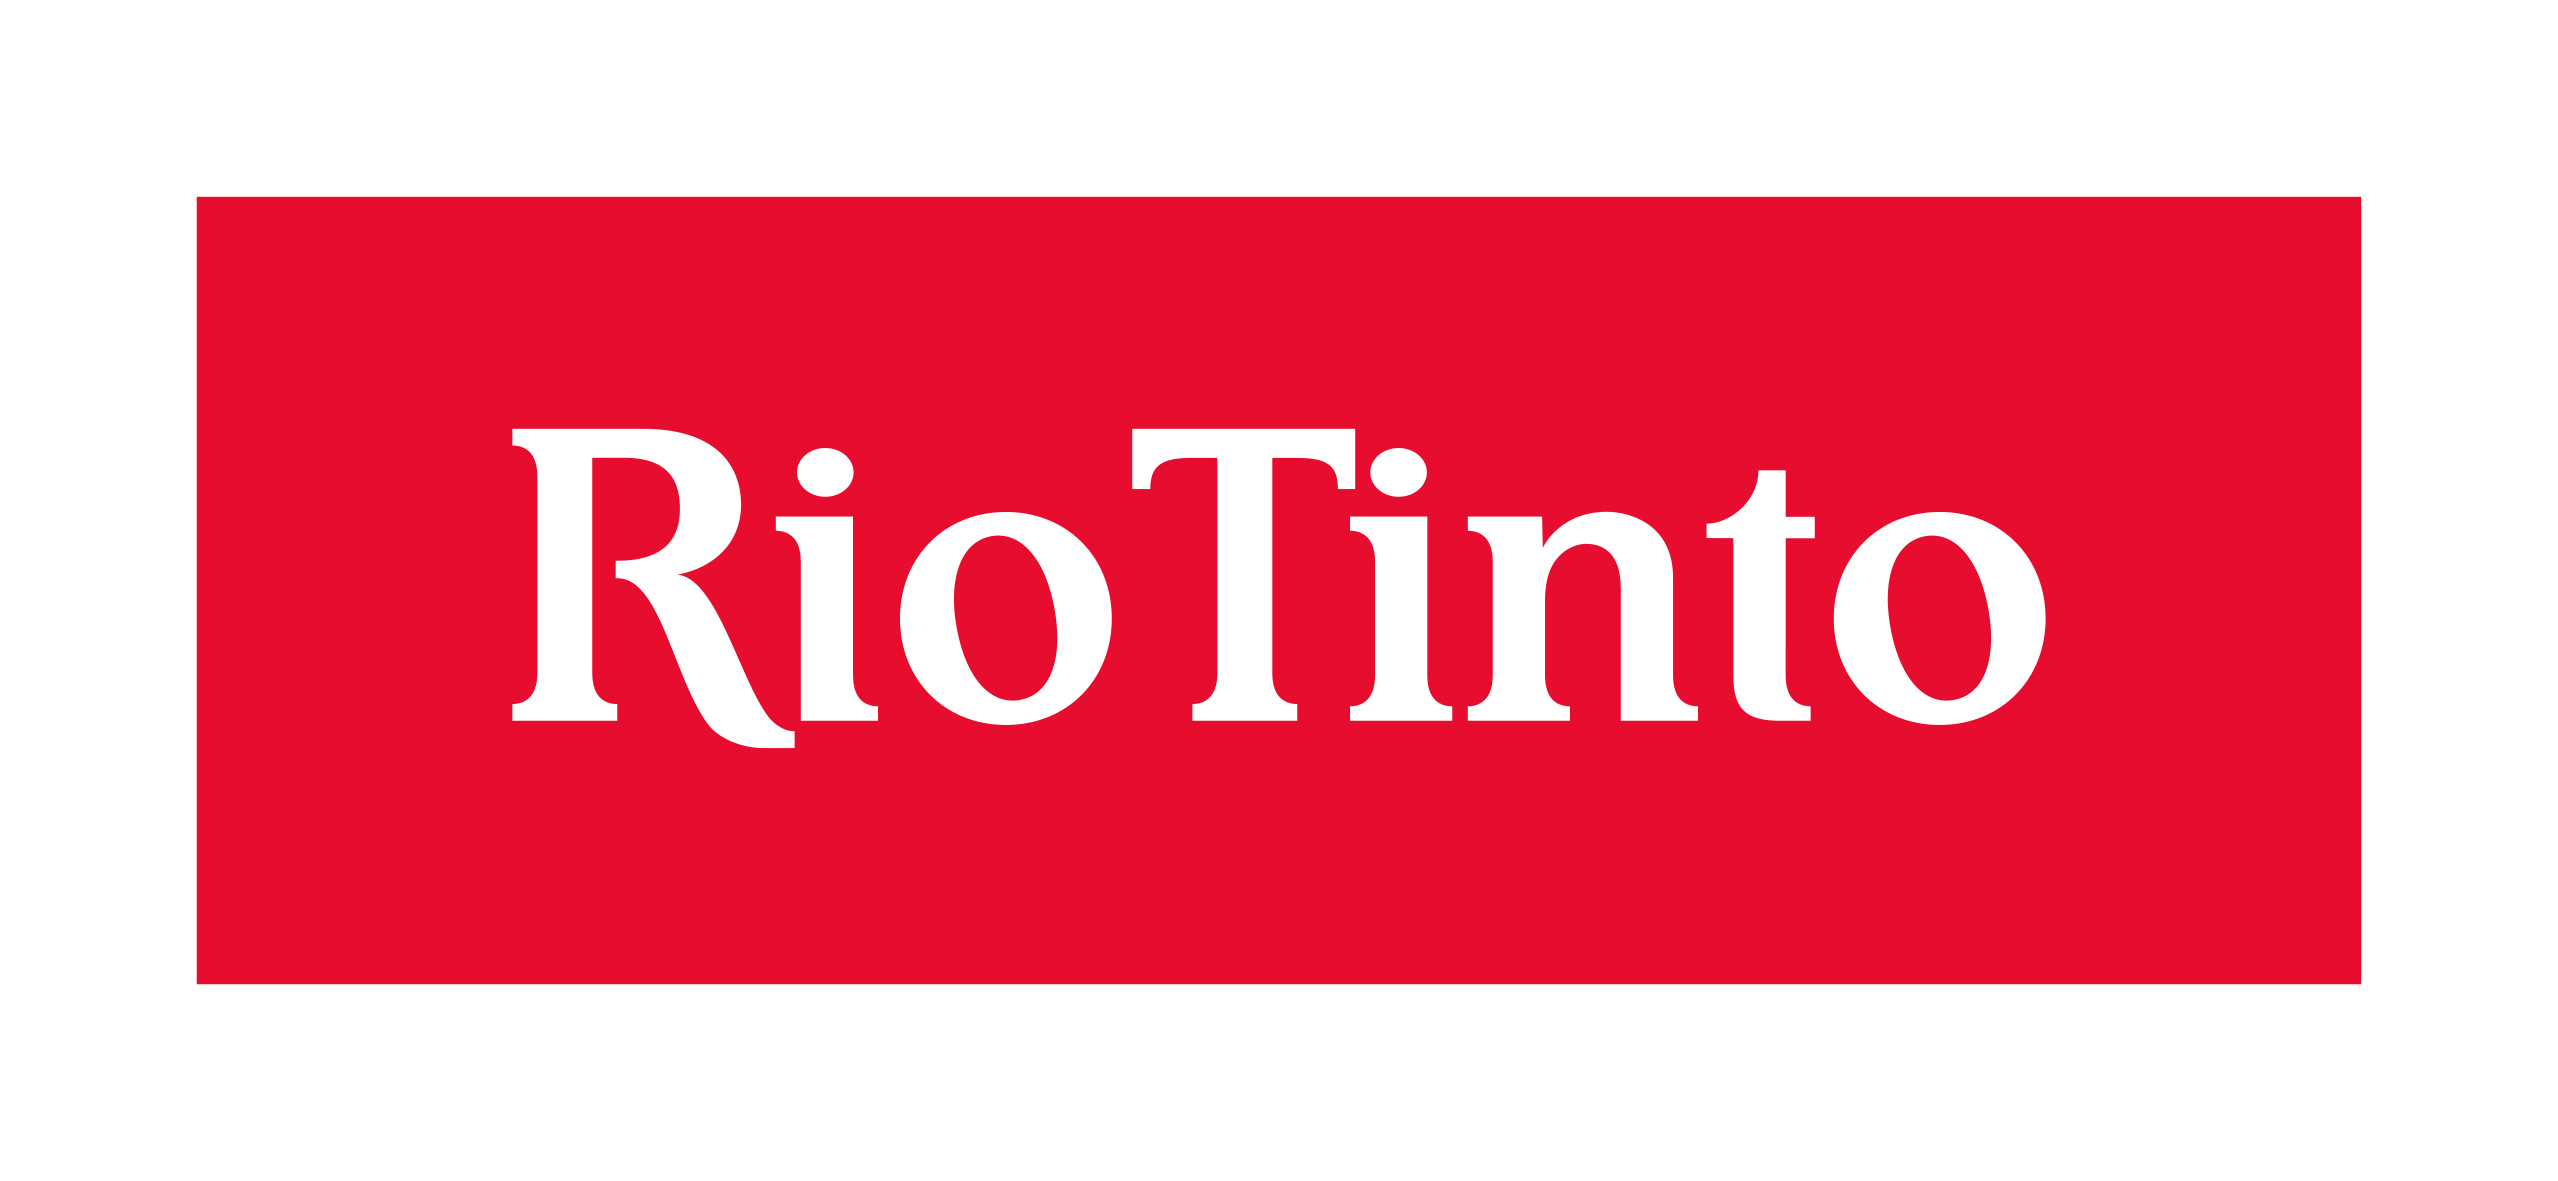 RioTinto_2017_Red